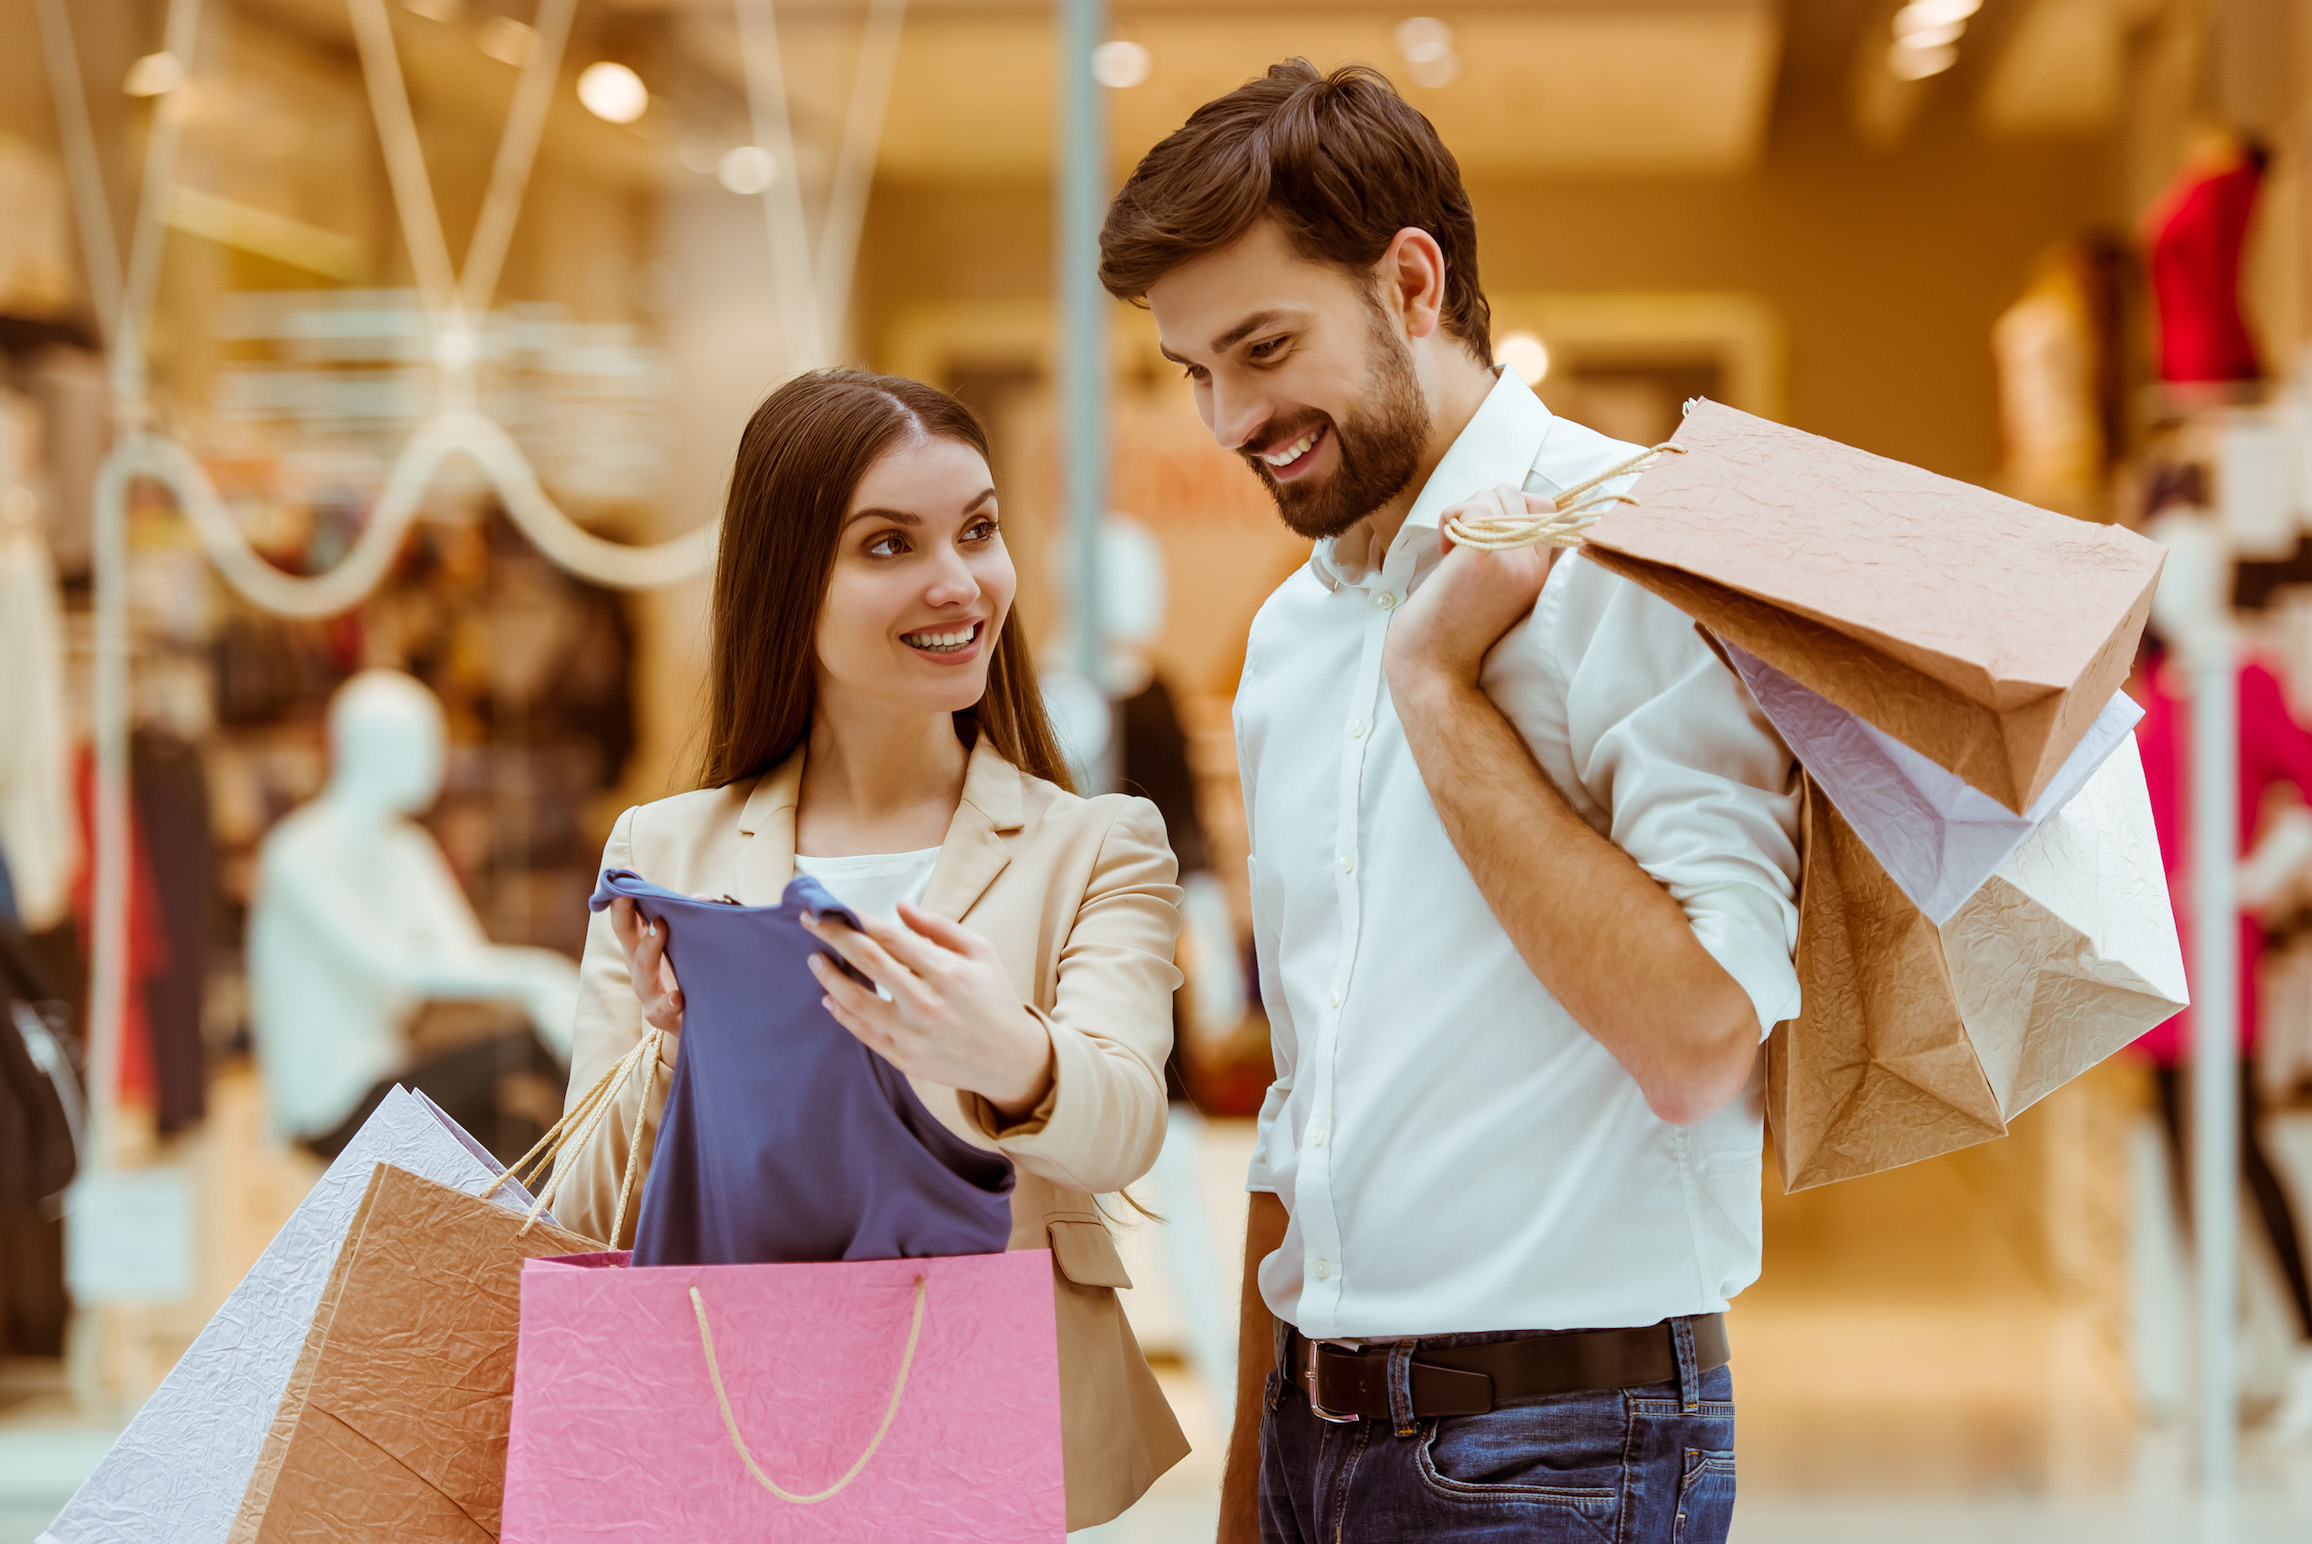 Happy beautiful young couple looking upon their purchase and smiling while standing in mall; Shutterstock ID 383258602